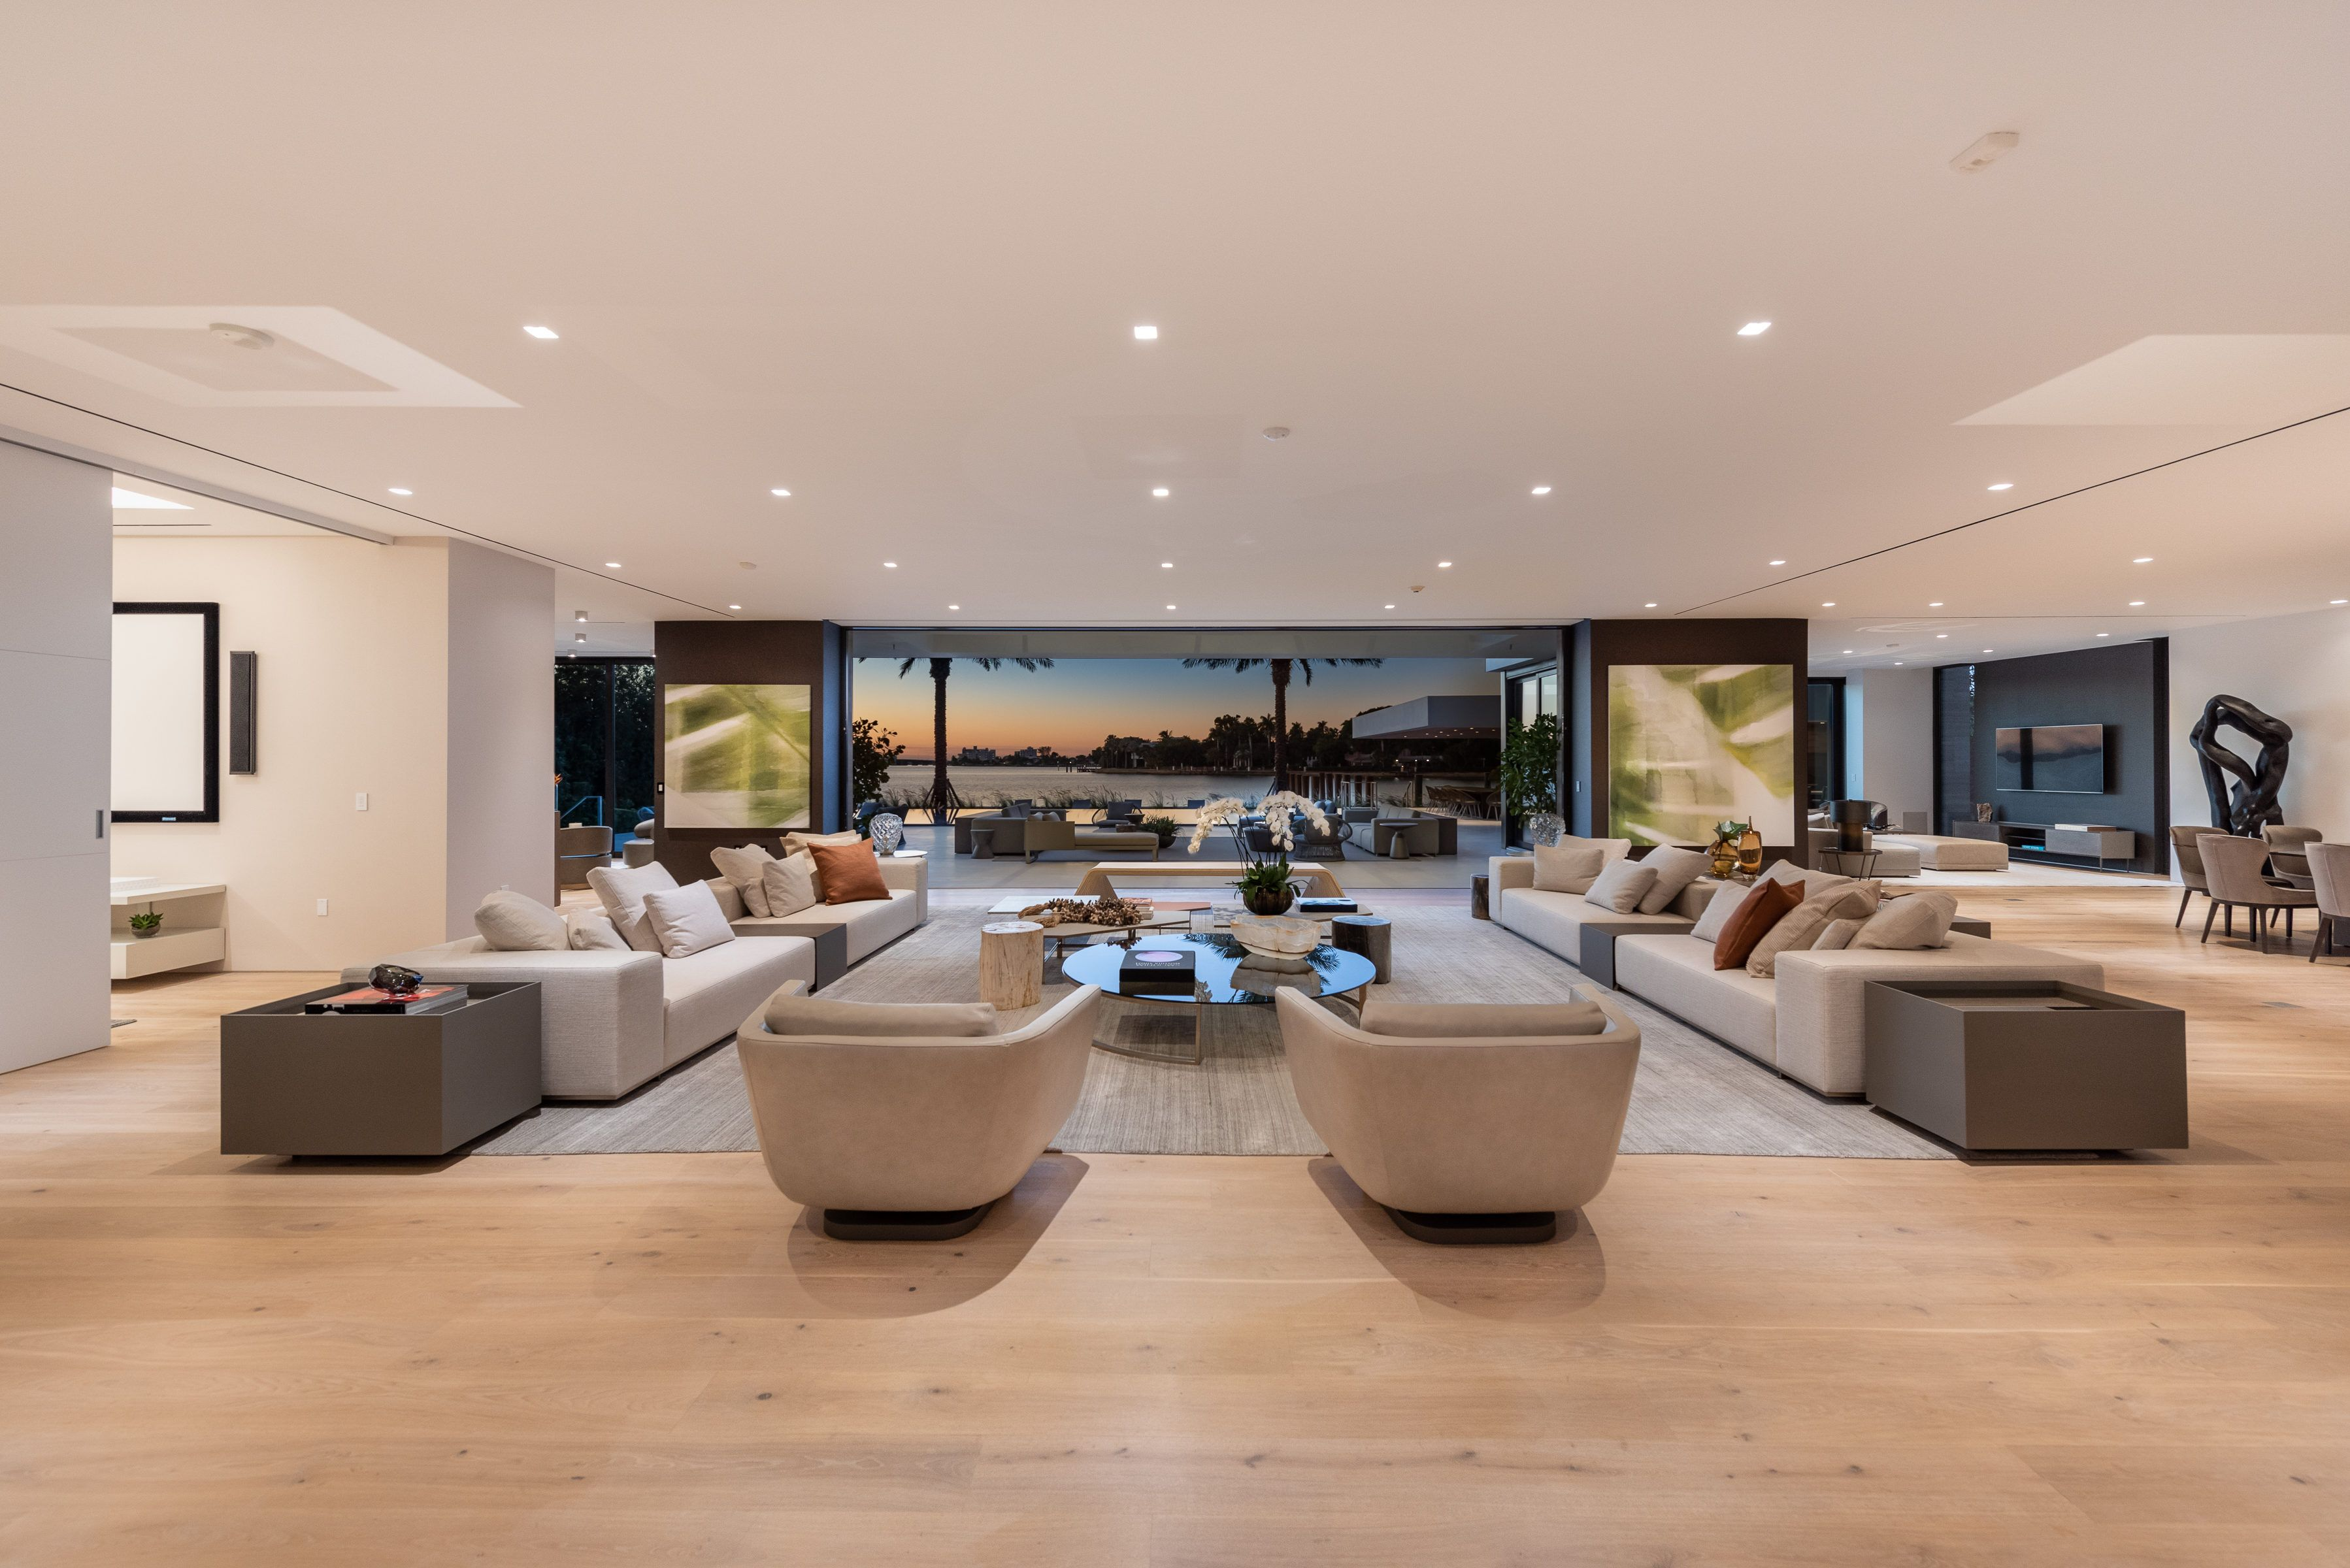 Living Room Of A 32 000 000 Mega Mansion In Miami Beach Dream House Decor Tiny House Luxury Home Room Design